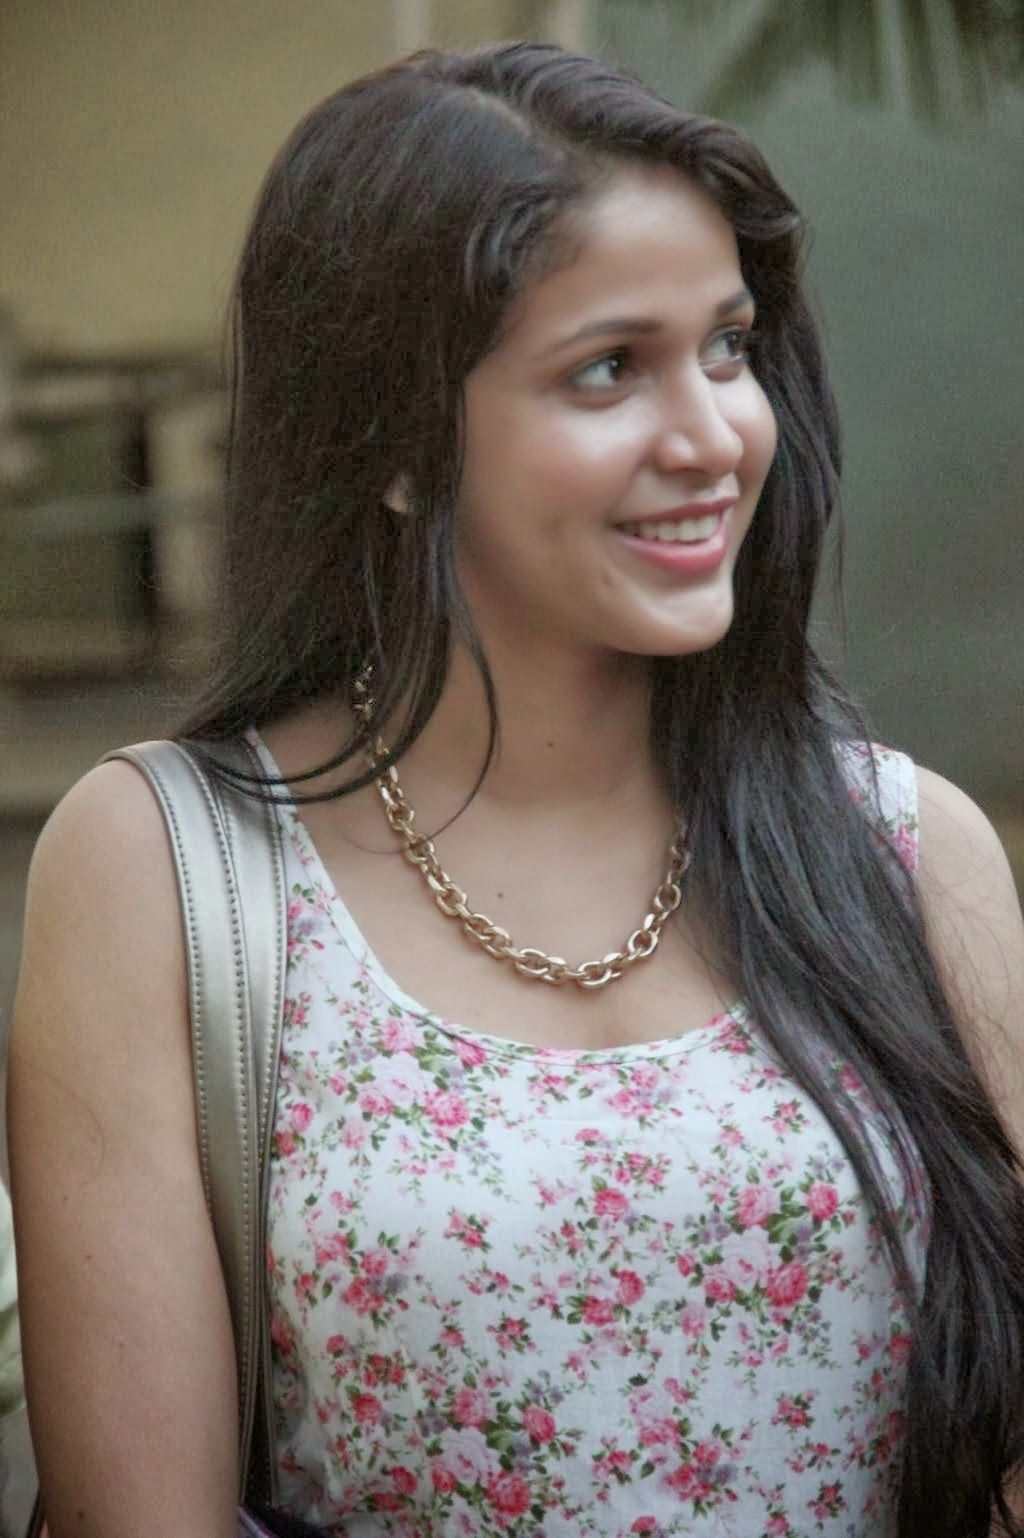 lavanya tripathi facebooklavanya tripathi, lavanya tripathi biography, lavanya tripathi images download, lavanya tripathi images, lavanya tripathi facebook, lavanya tripathi in manam, lavanya tripathi ragalahari, lavanya tripathi profile, lavanya tripathi hot pics, lavanya tripathi navel, lavanya tripathi hot images, lavanya tripathi twitter, lavanya tripathi hot photos, lavanya tripathi height, lavanya tripathi date of birth